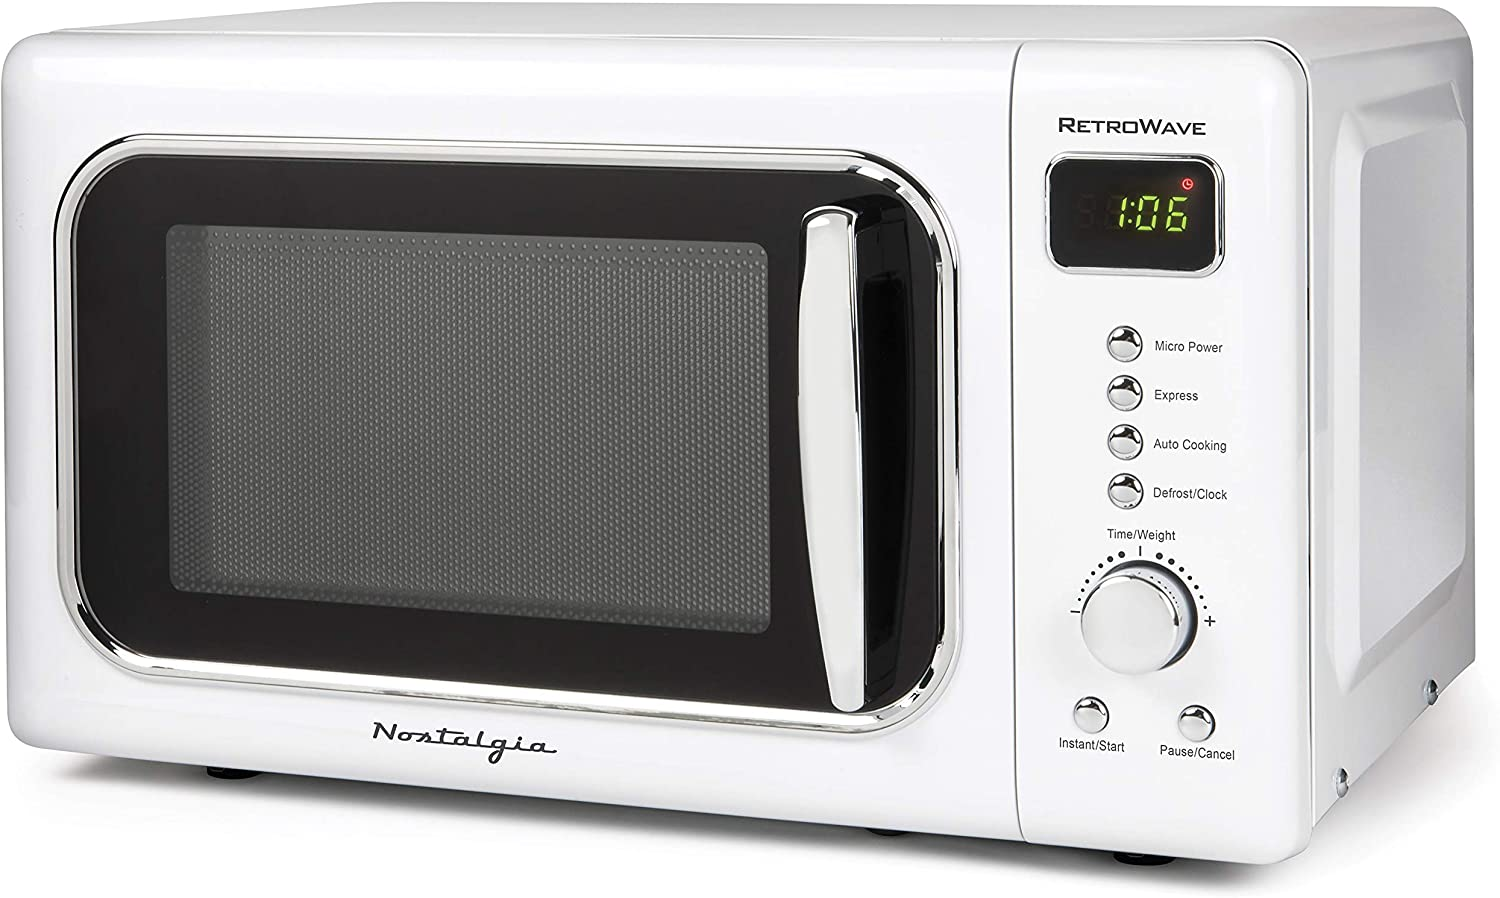 Nostalgia CLMO7WH Classic Retro 0.7 Cu. Ft. 700-Watt Countertop Microwave Oven With LED Display, 5 Power Levels, 8 Cook Settings, White